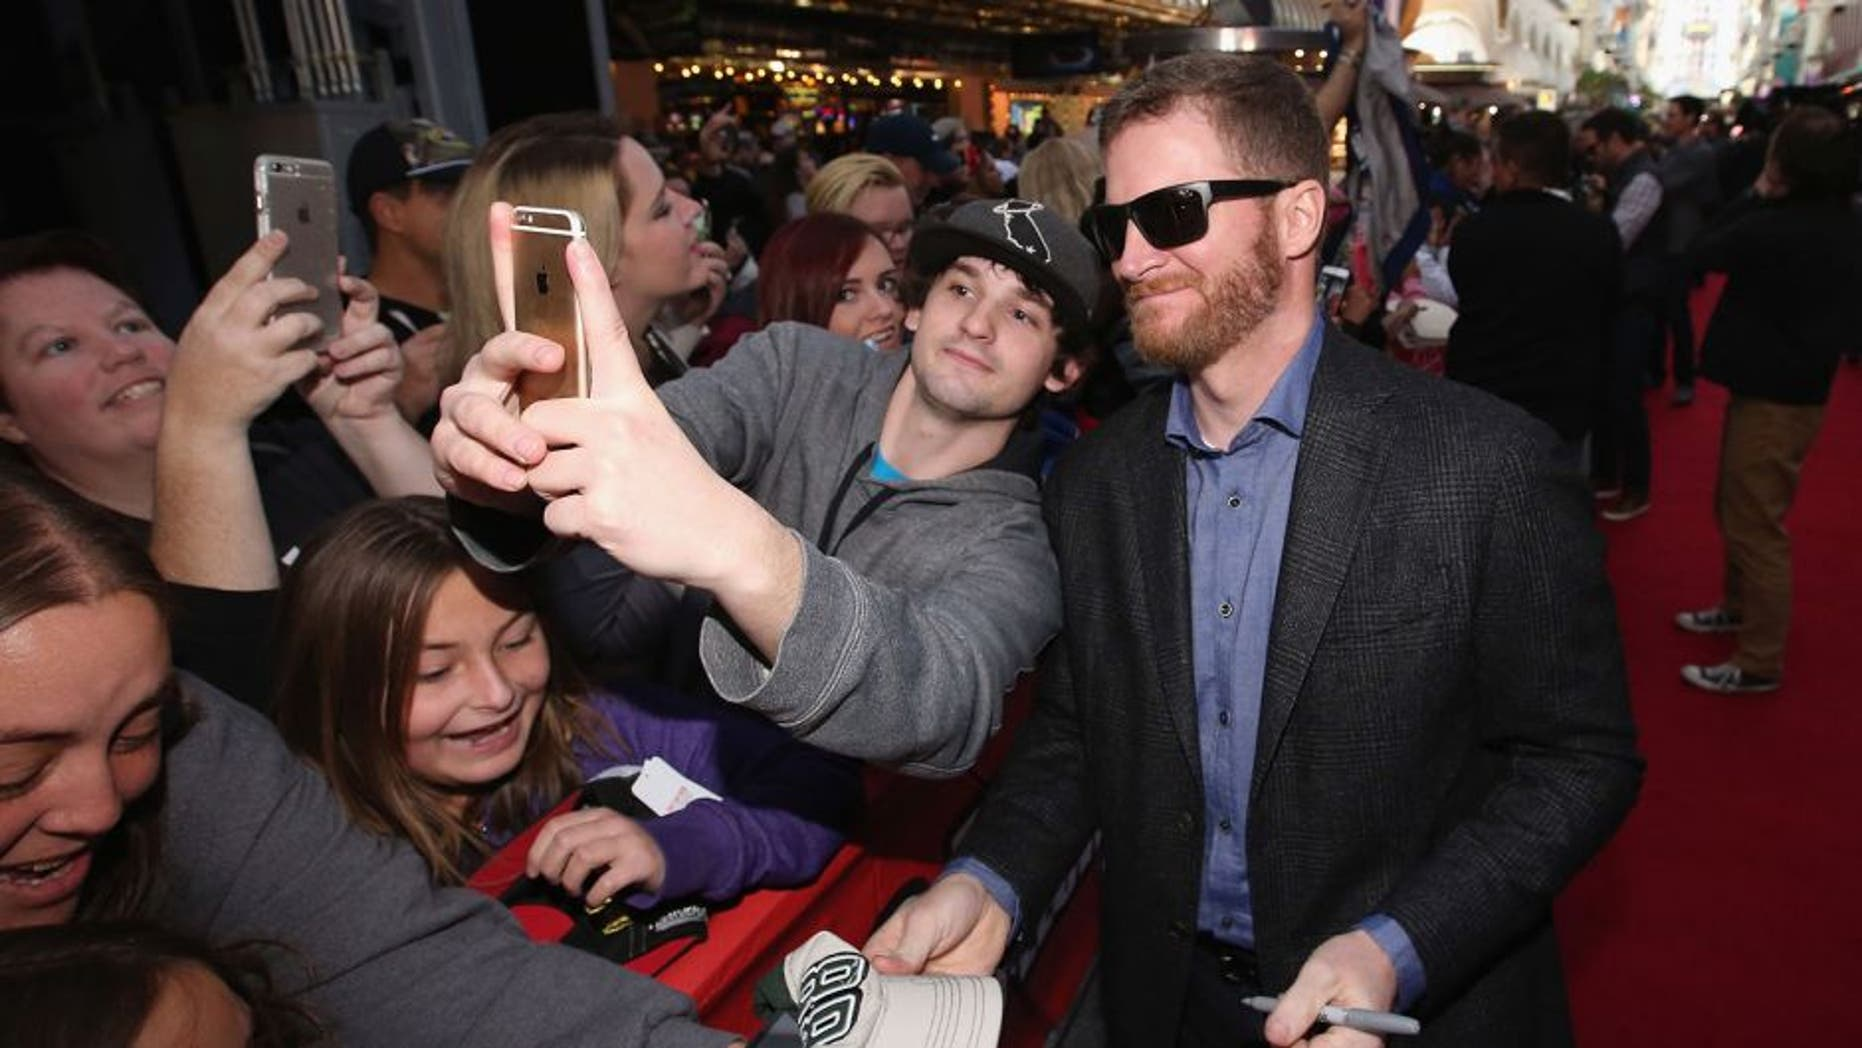 LAS VEGAS, NV - DECEMBER 02: NASCAR Sprint Cup Series driver Dale Earnhardt Jr. interacts with fans during the NASCAR Sprint Cup Series FanFest hosted by Las Vegas Motor Speedway on the Third Street Stage at the Fremont Street Experience on December 2, 2015 in Las Vegas, Nevada. (Photo by Sean Gardner/NASCAR via Getty Images)